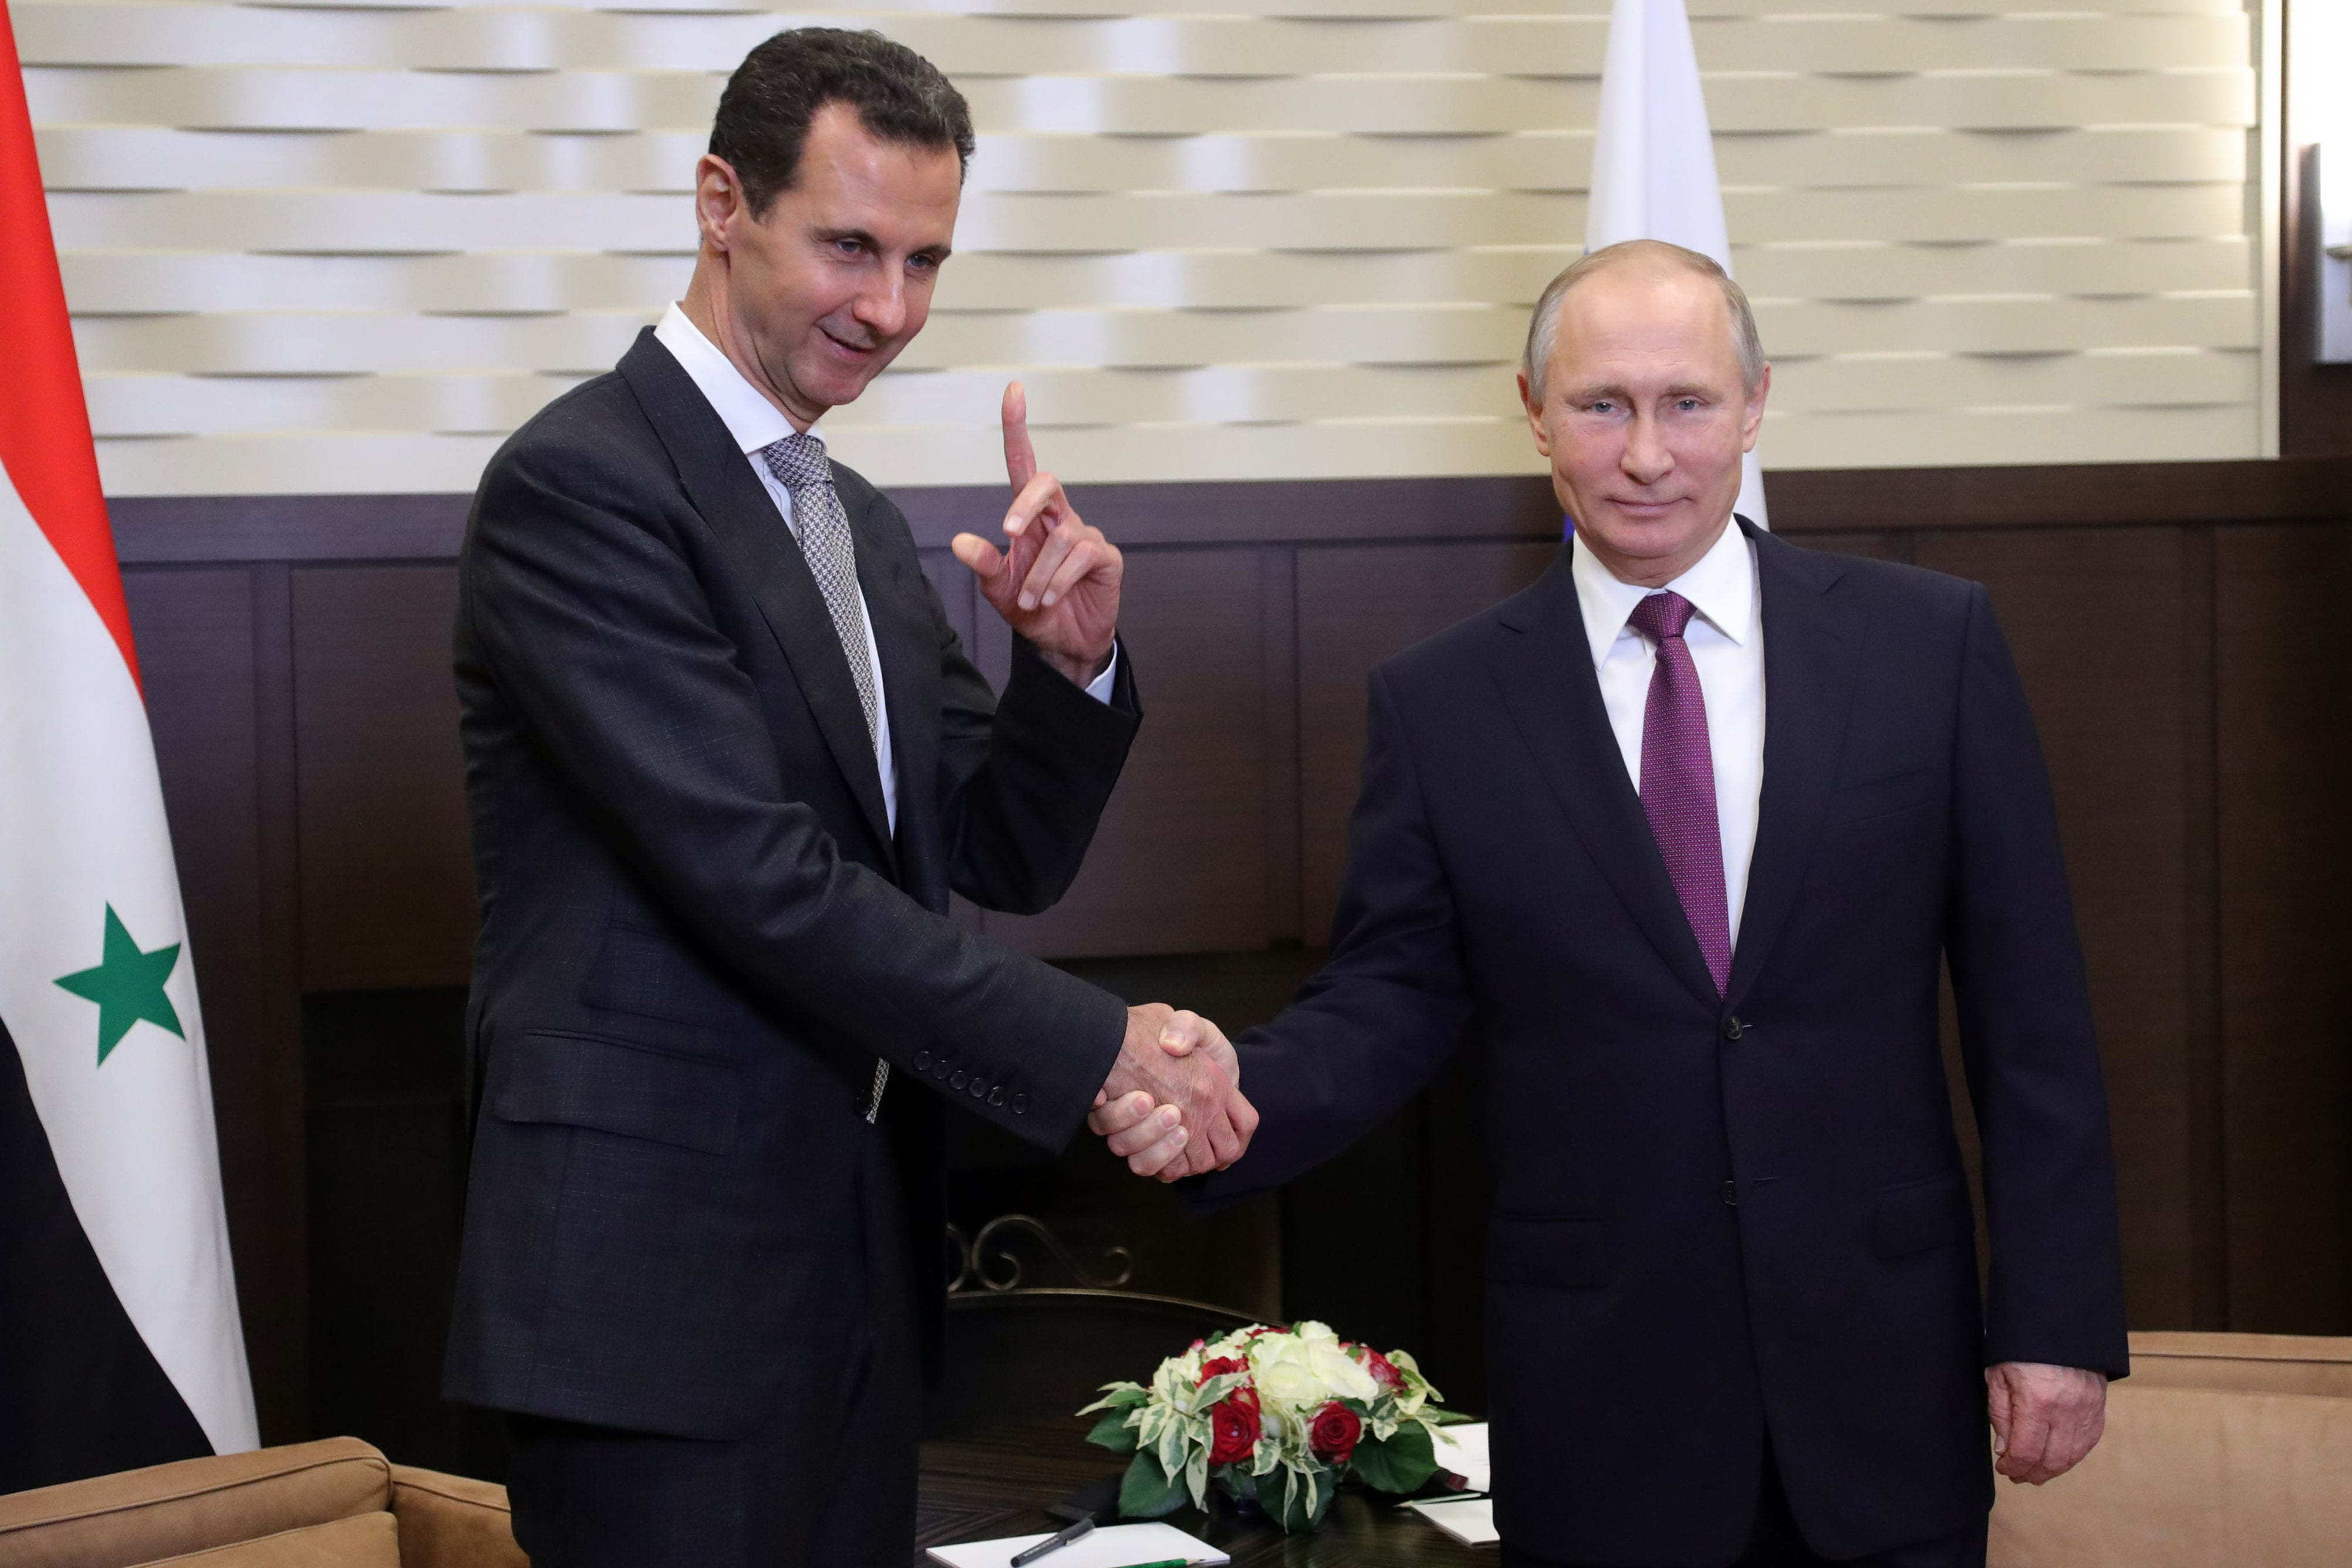 Image Russia's President Vladimir Putin (R) shakes hands with his Syrian counterpart Bashar al-Assad, November 20, 2017 [Mikhail KLIMENTYEV / AFP]